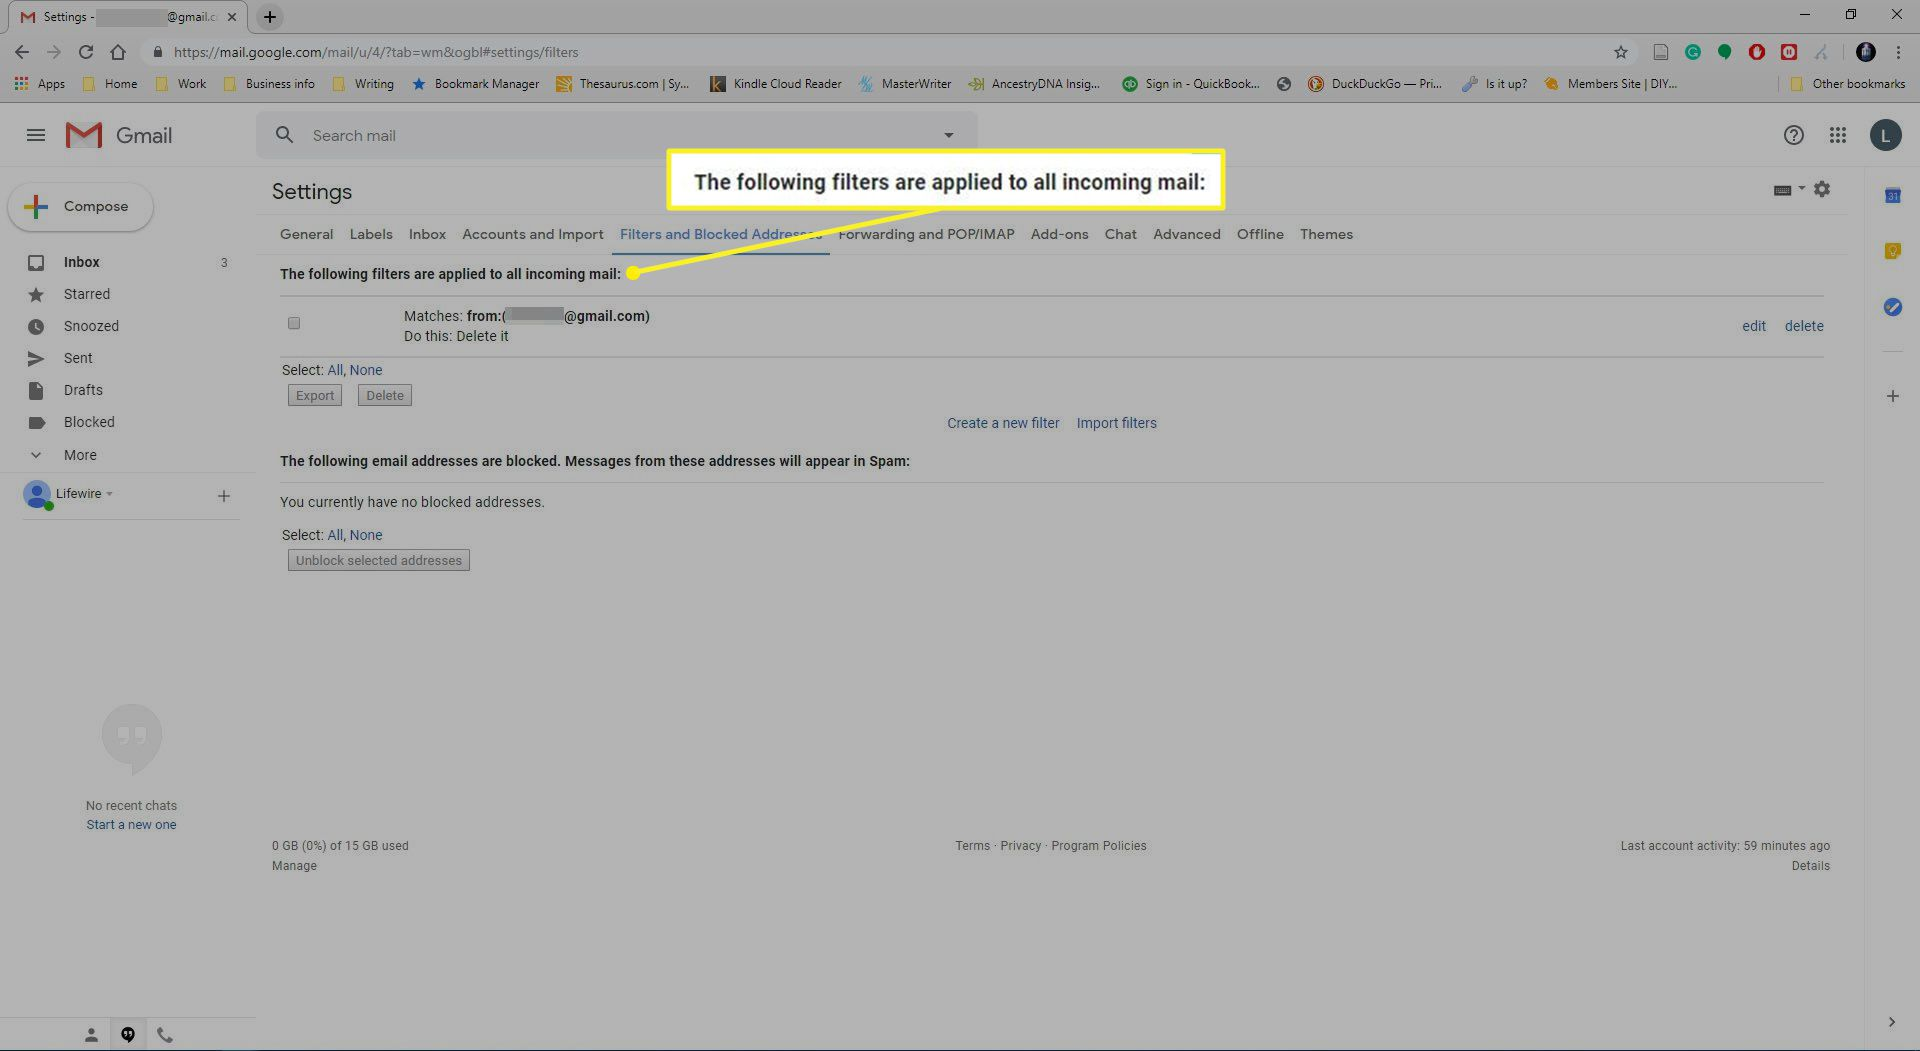 Filters and blocked addresses in Gmail